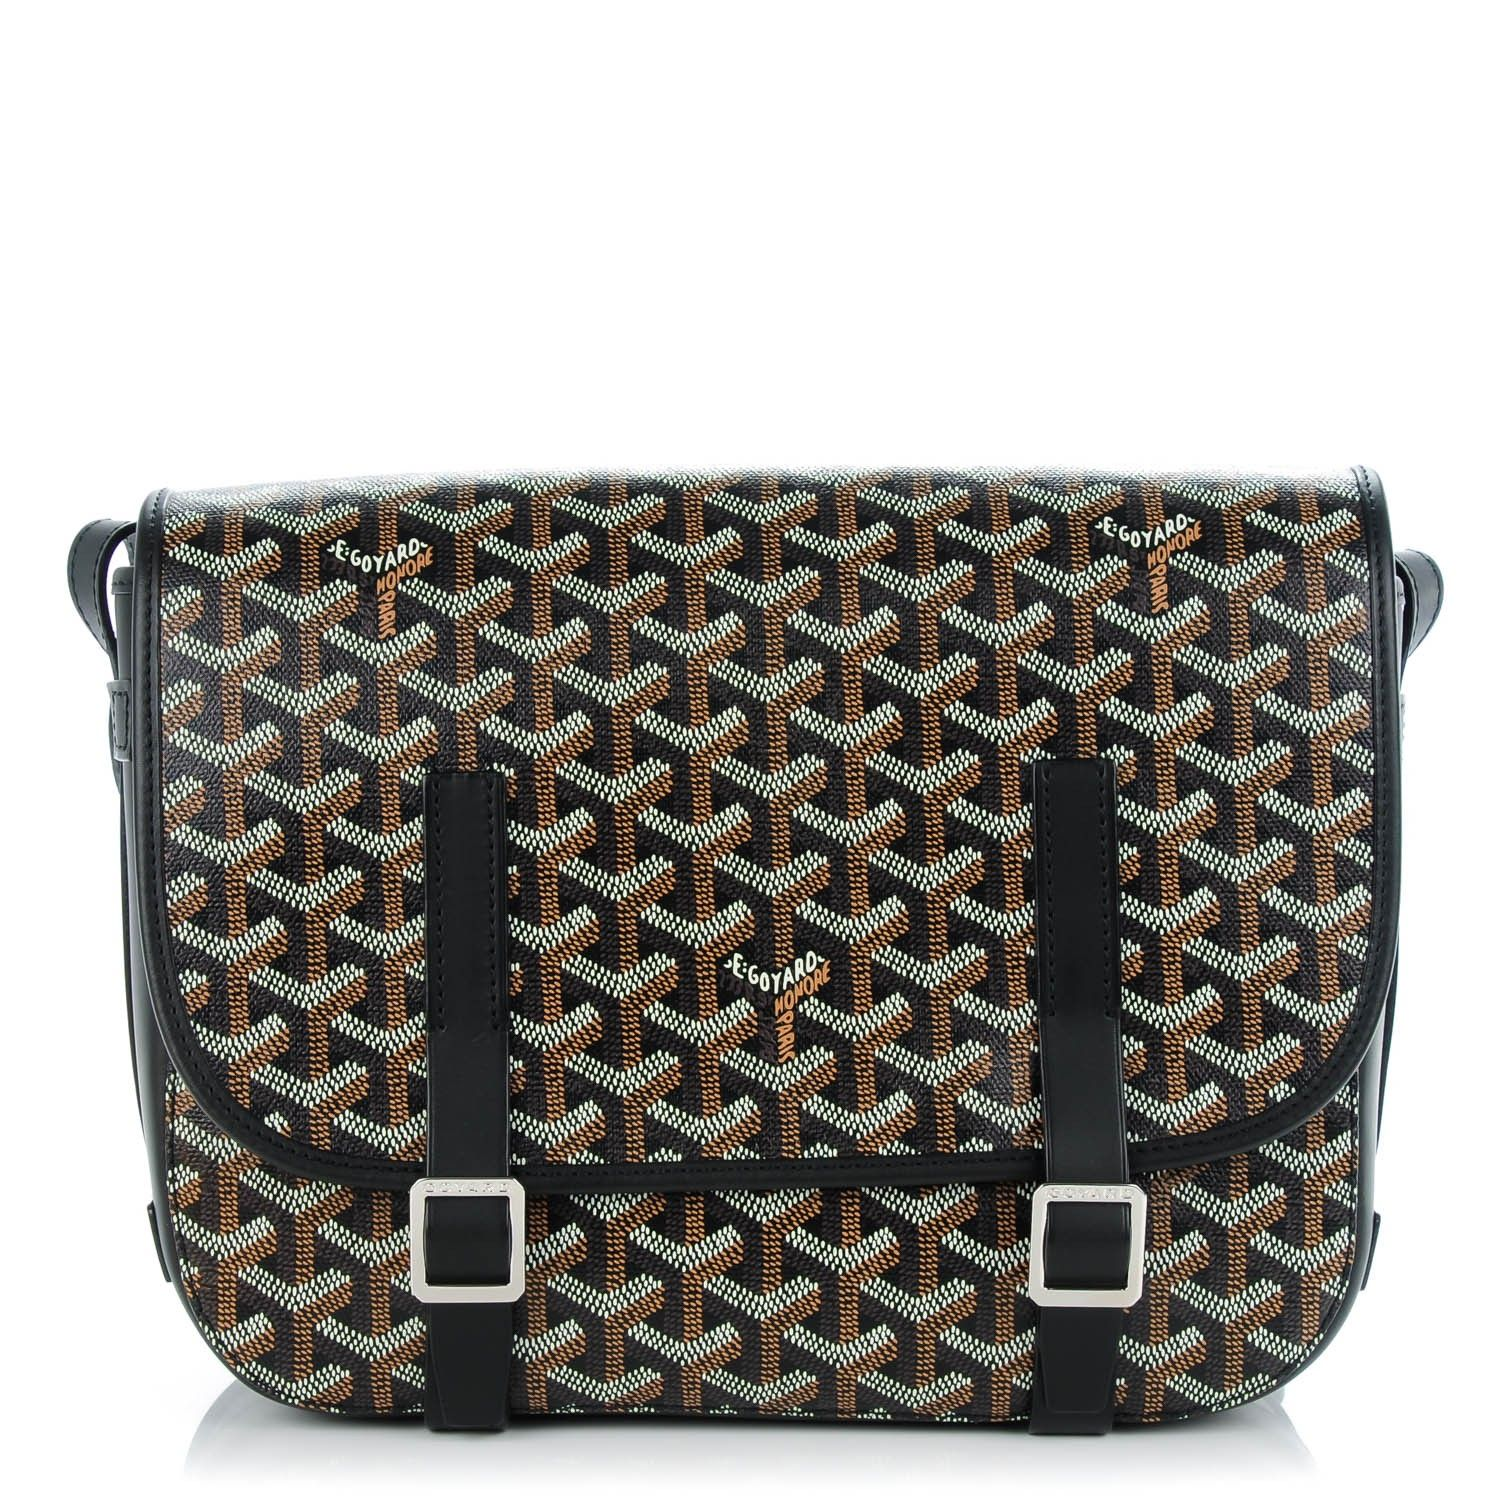 e3ad1f67337d This is an authentic GOYARD Chevron Belvedere MM Messenger Bag in Black.  This…